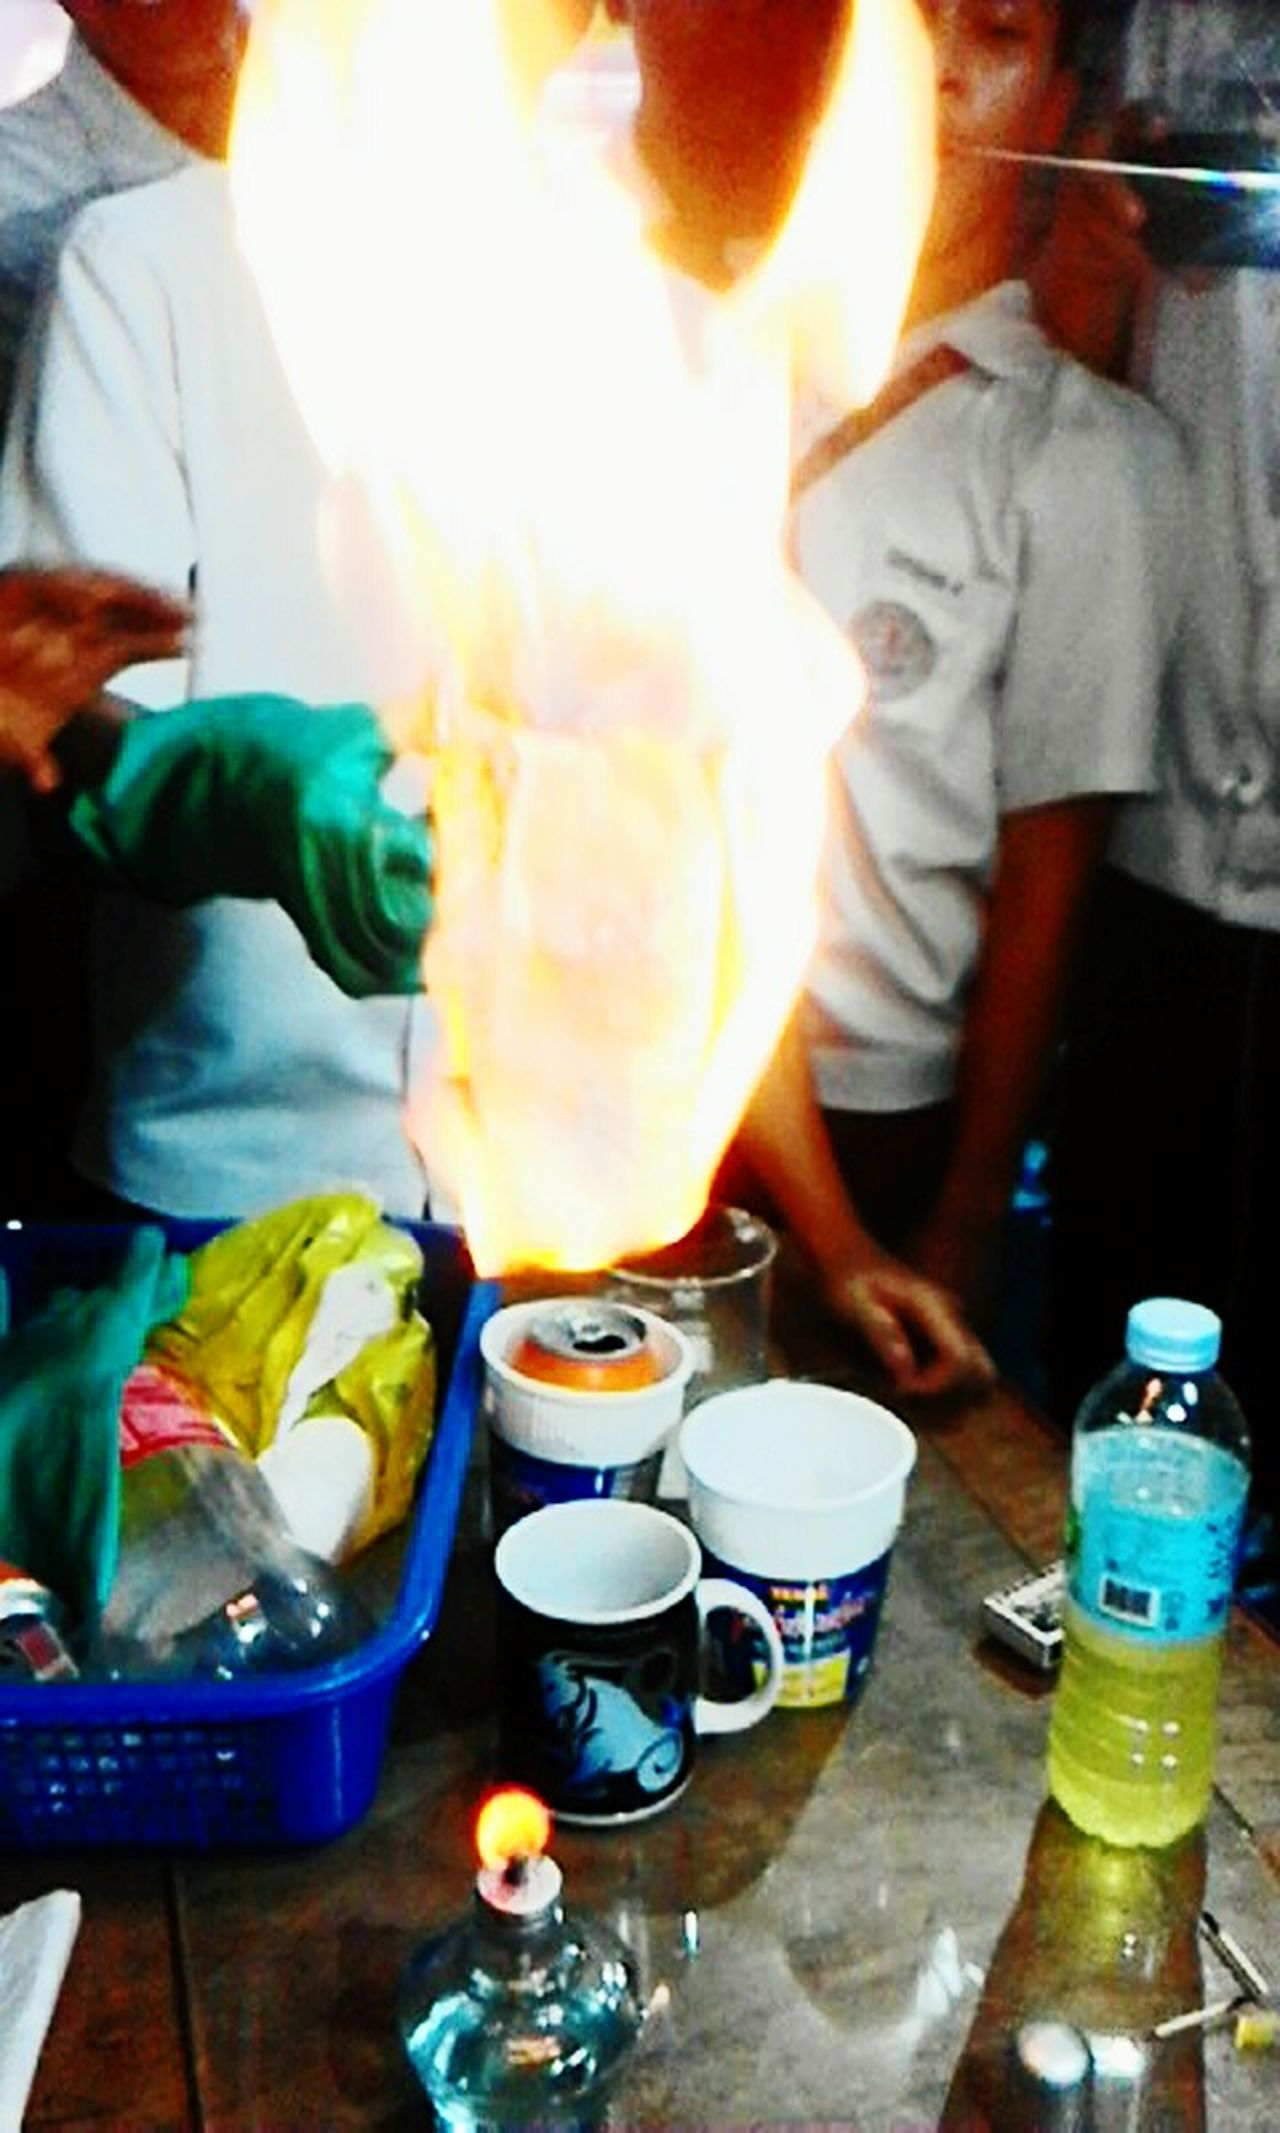 Money On Fire Experiment Money Salt And 40% Solution Money And Fire Investigation Apparatus Chemicals Chemical Reaction School Activities Teacher Students